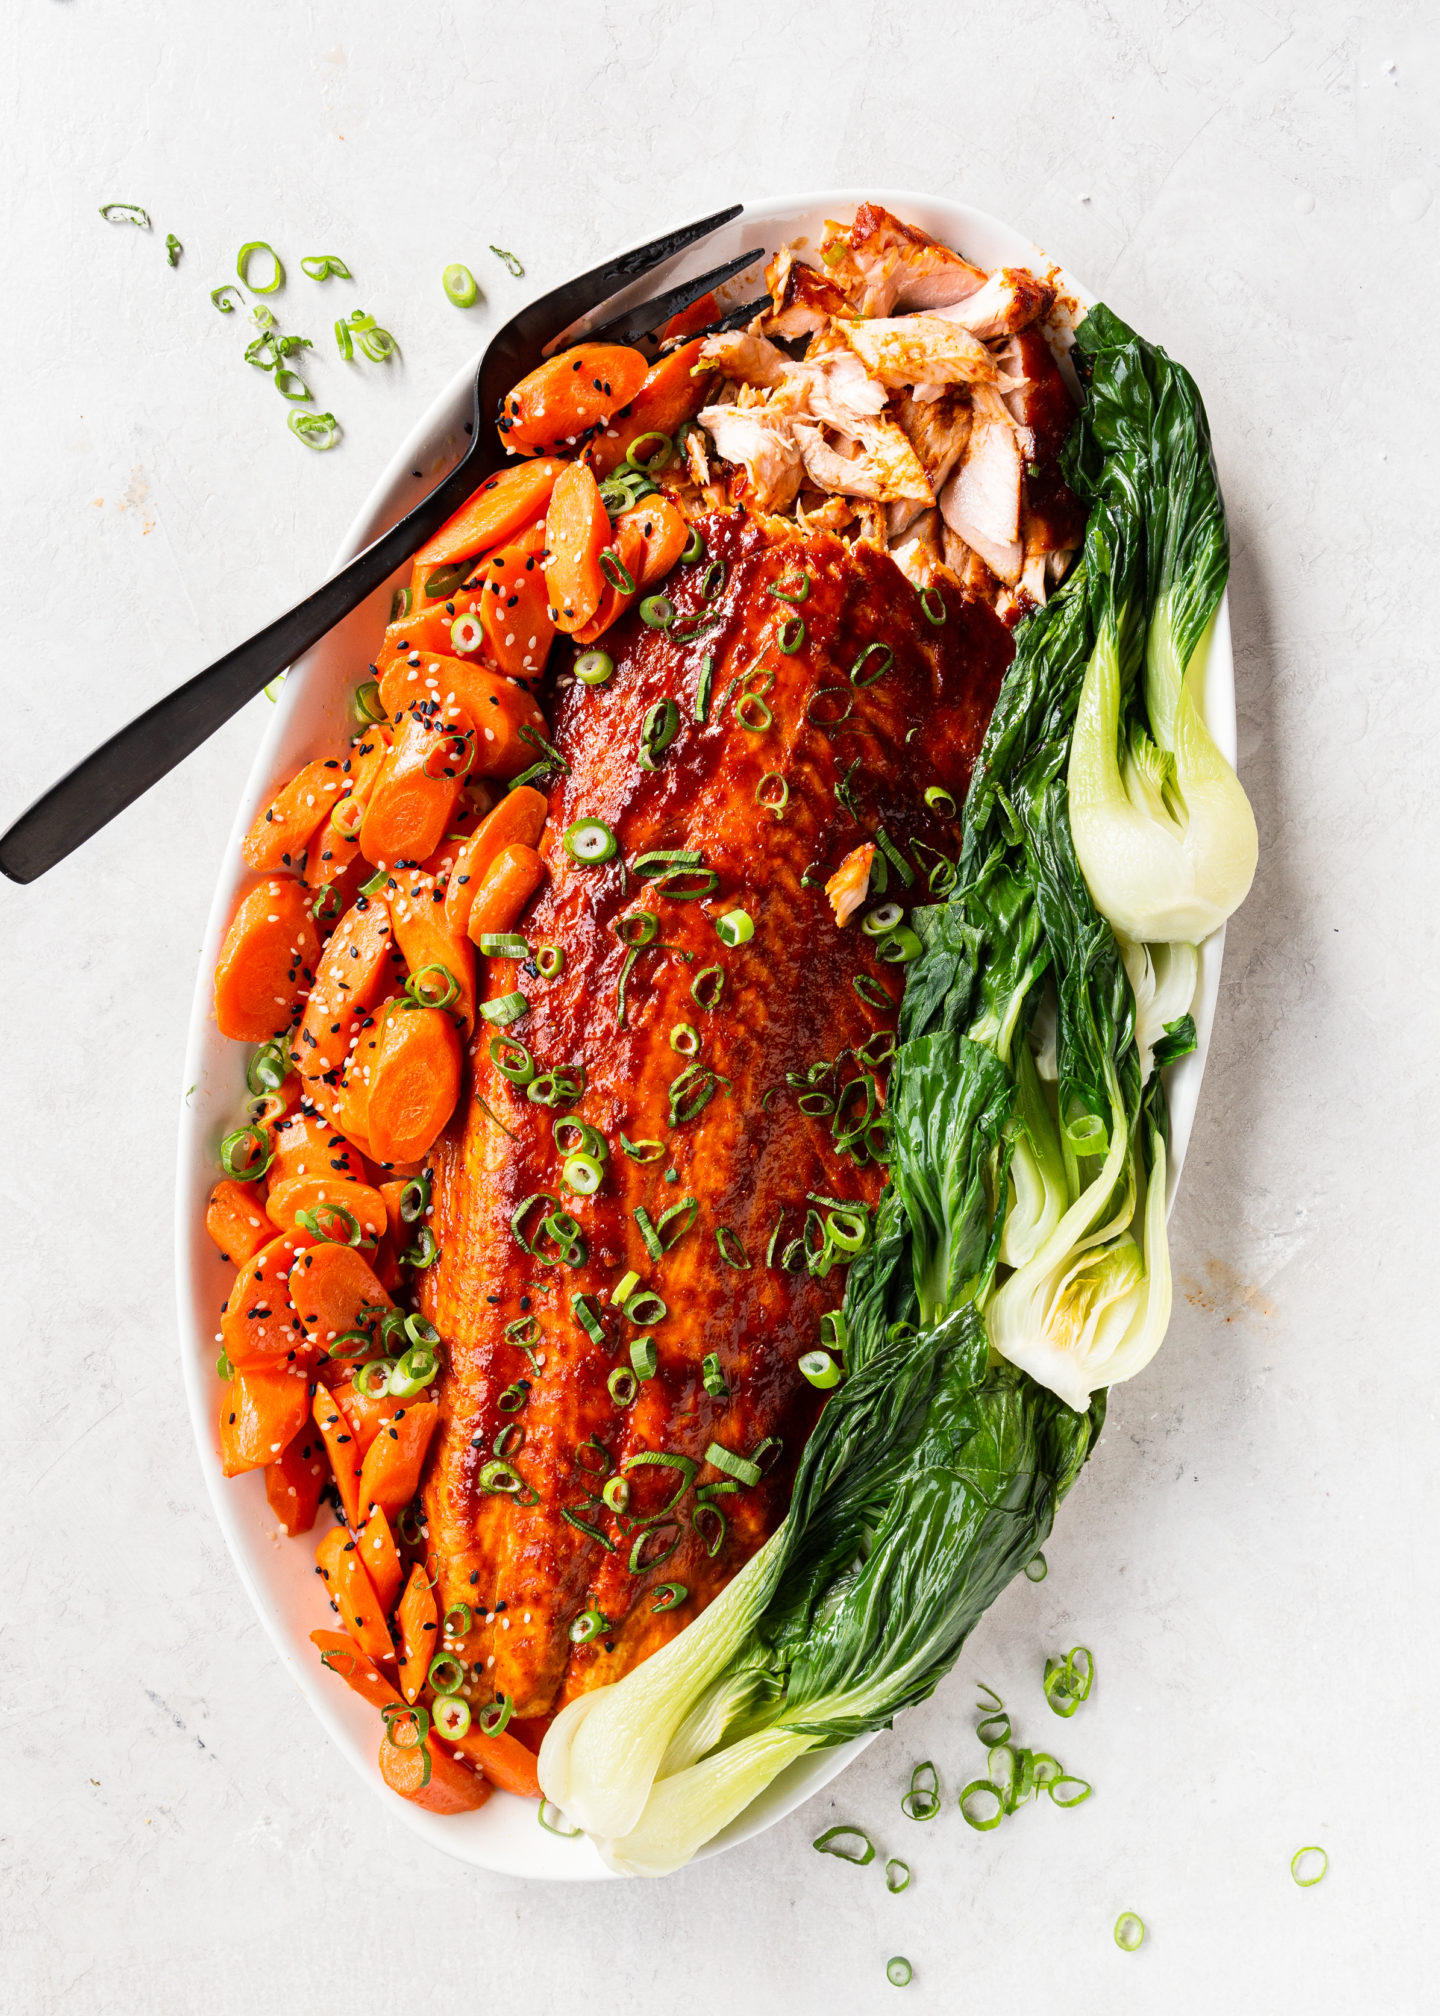 Gochujang Glazed Salmon with Bok Choy